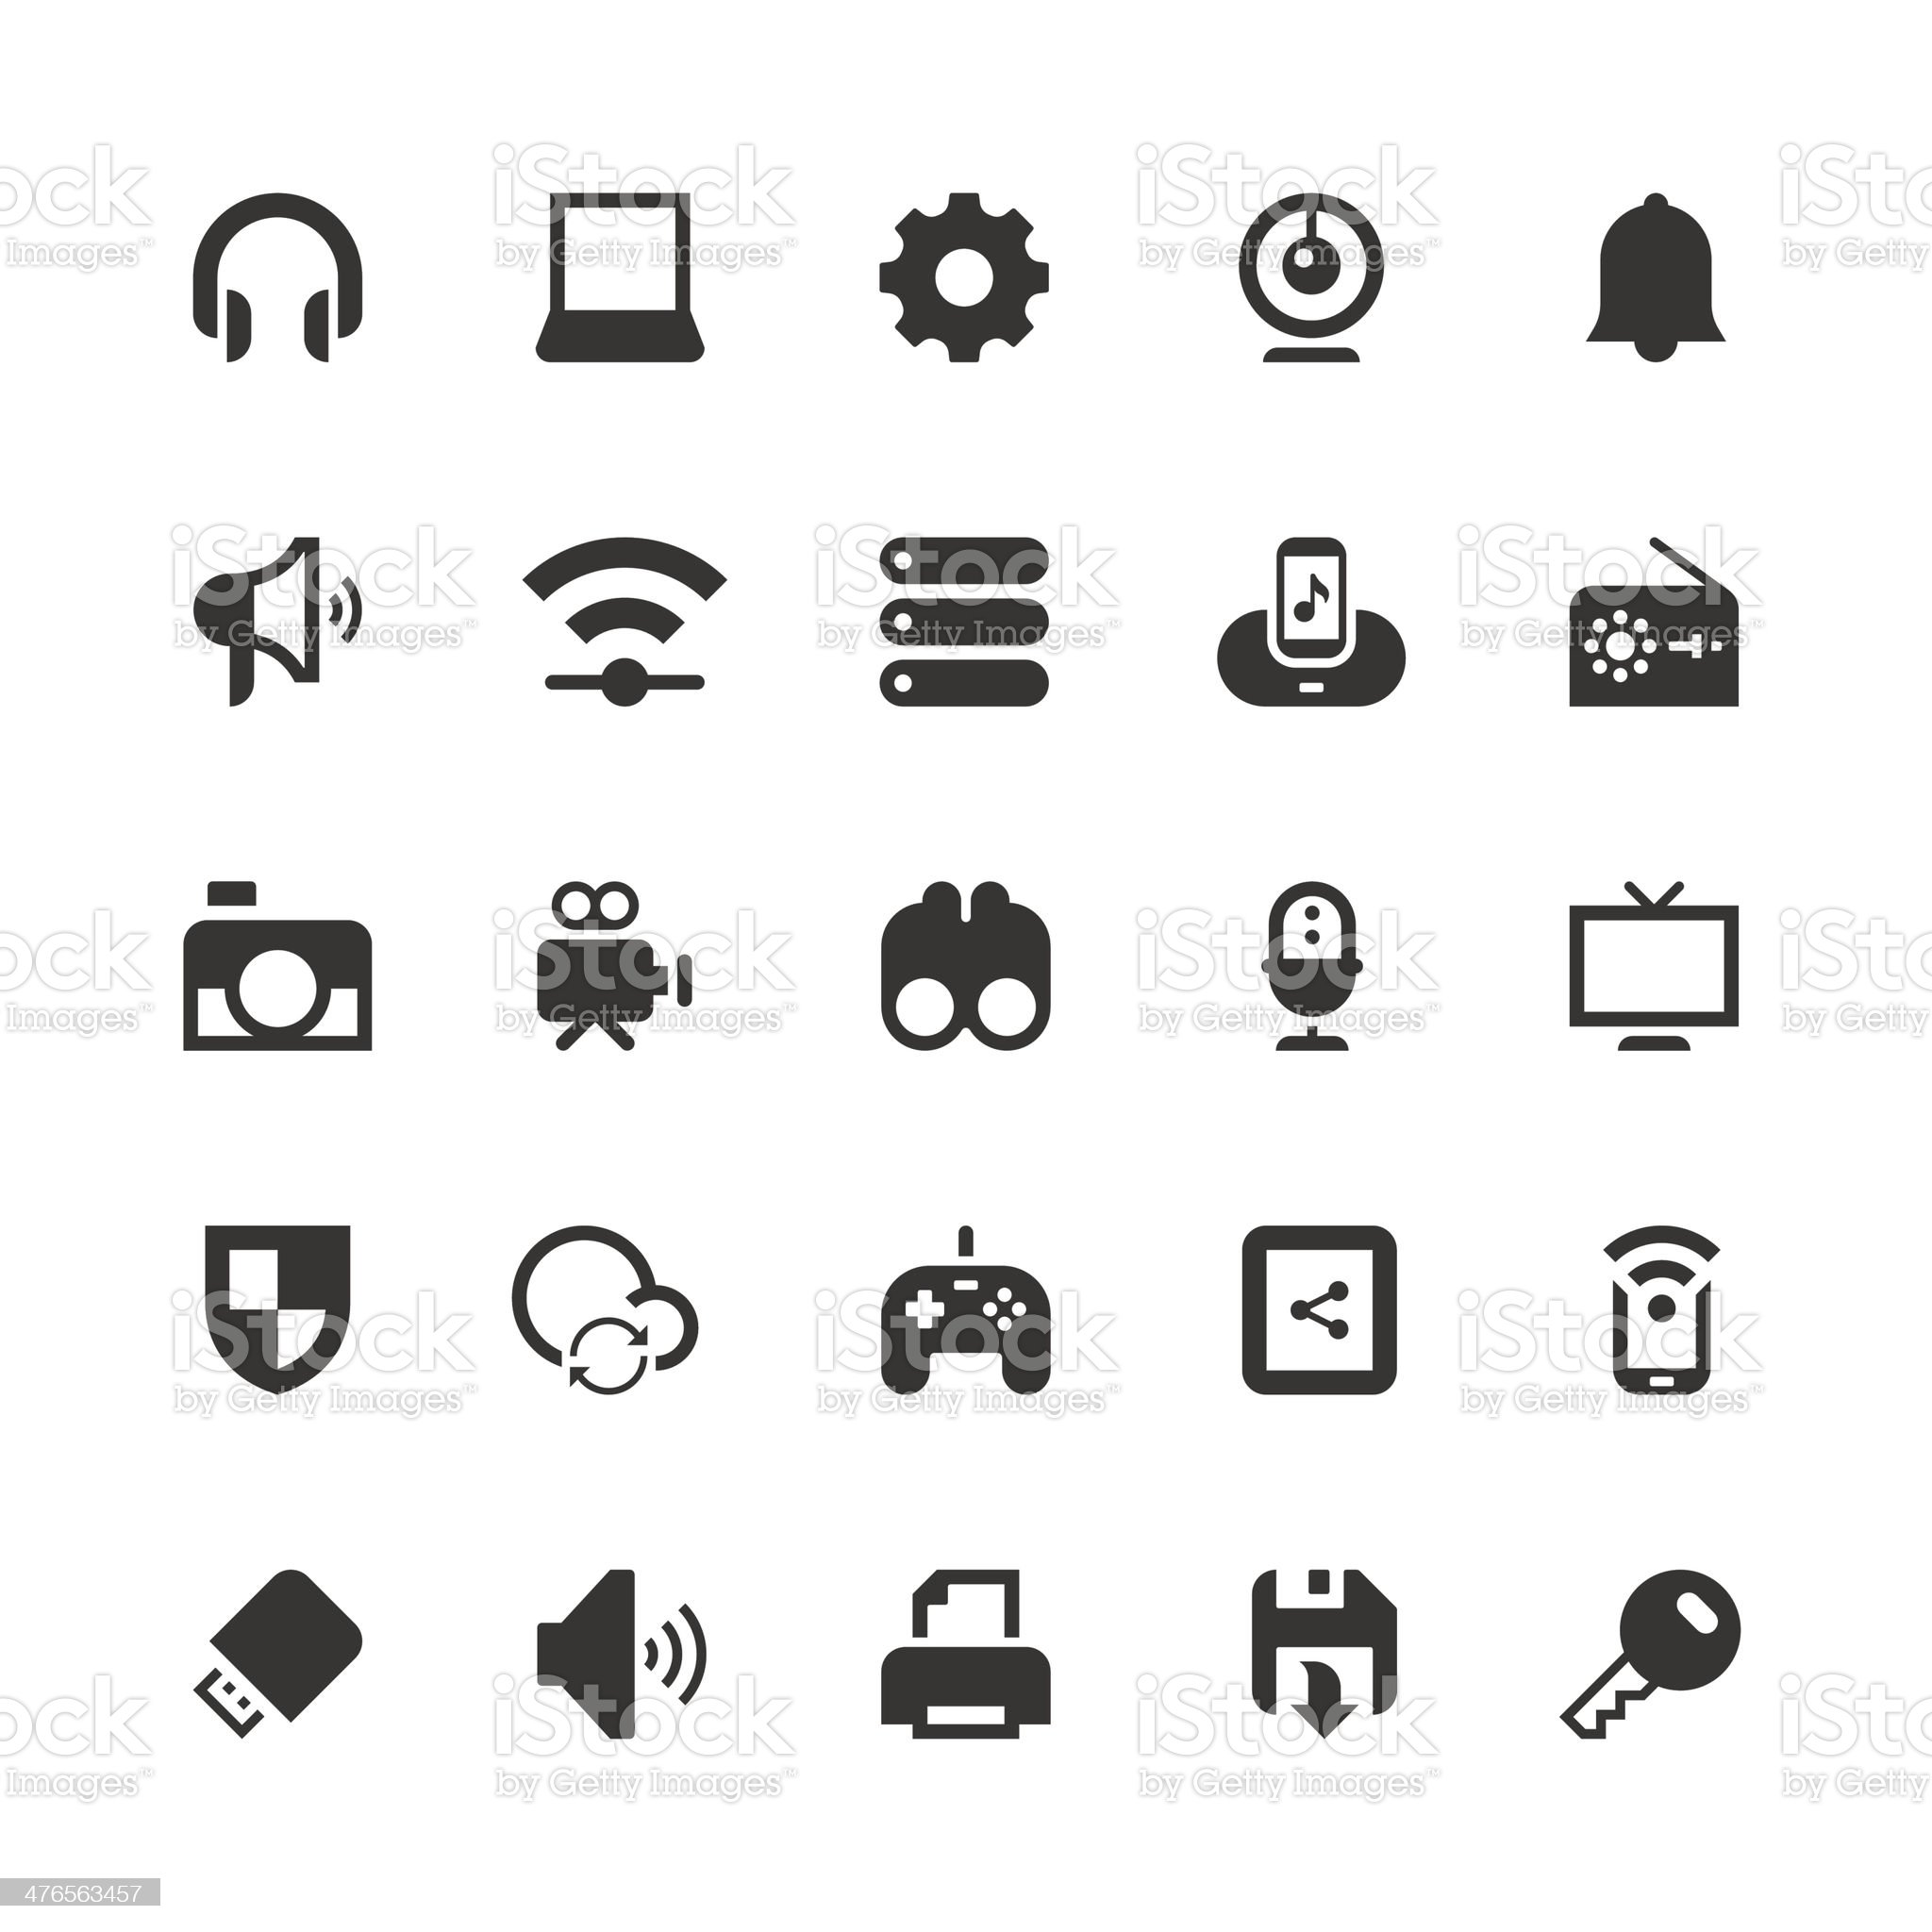 Device icon royalty-free stock vector art